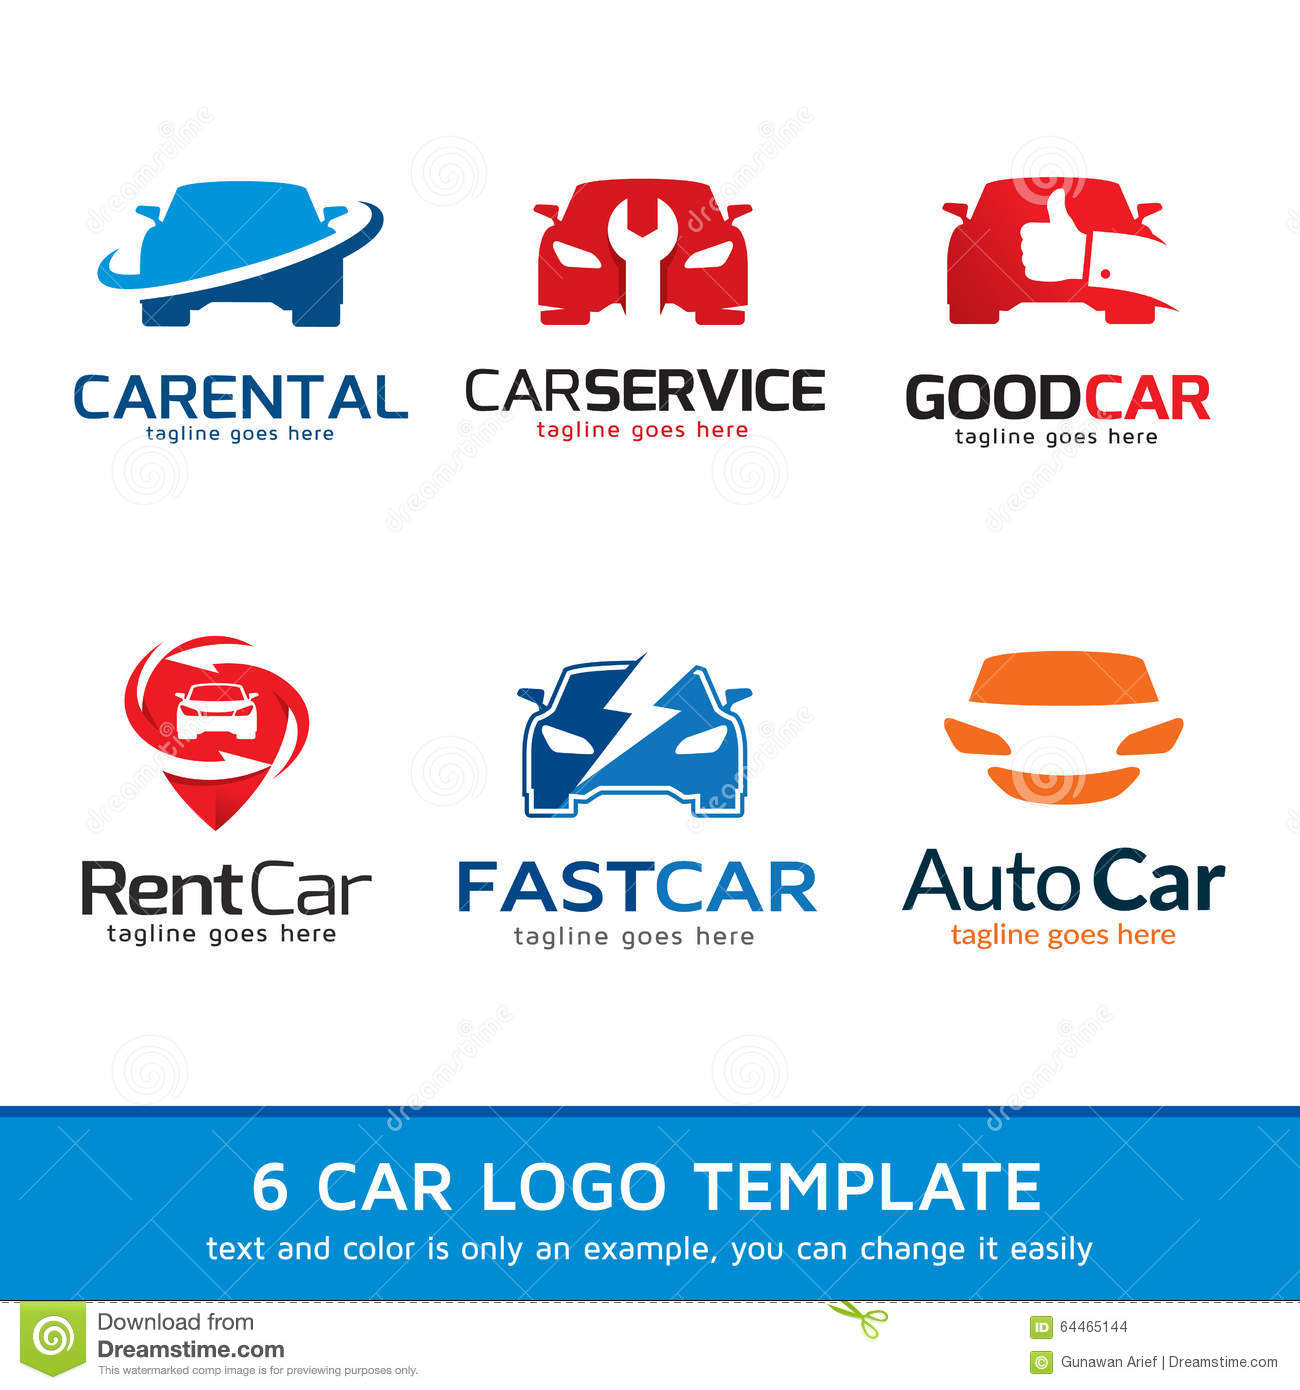 Automotive car logo template design stock vector illustration of download automotive car logo template design stock vector illustration of rent faster 64465144 flashek Images